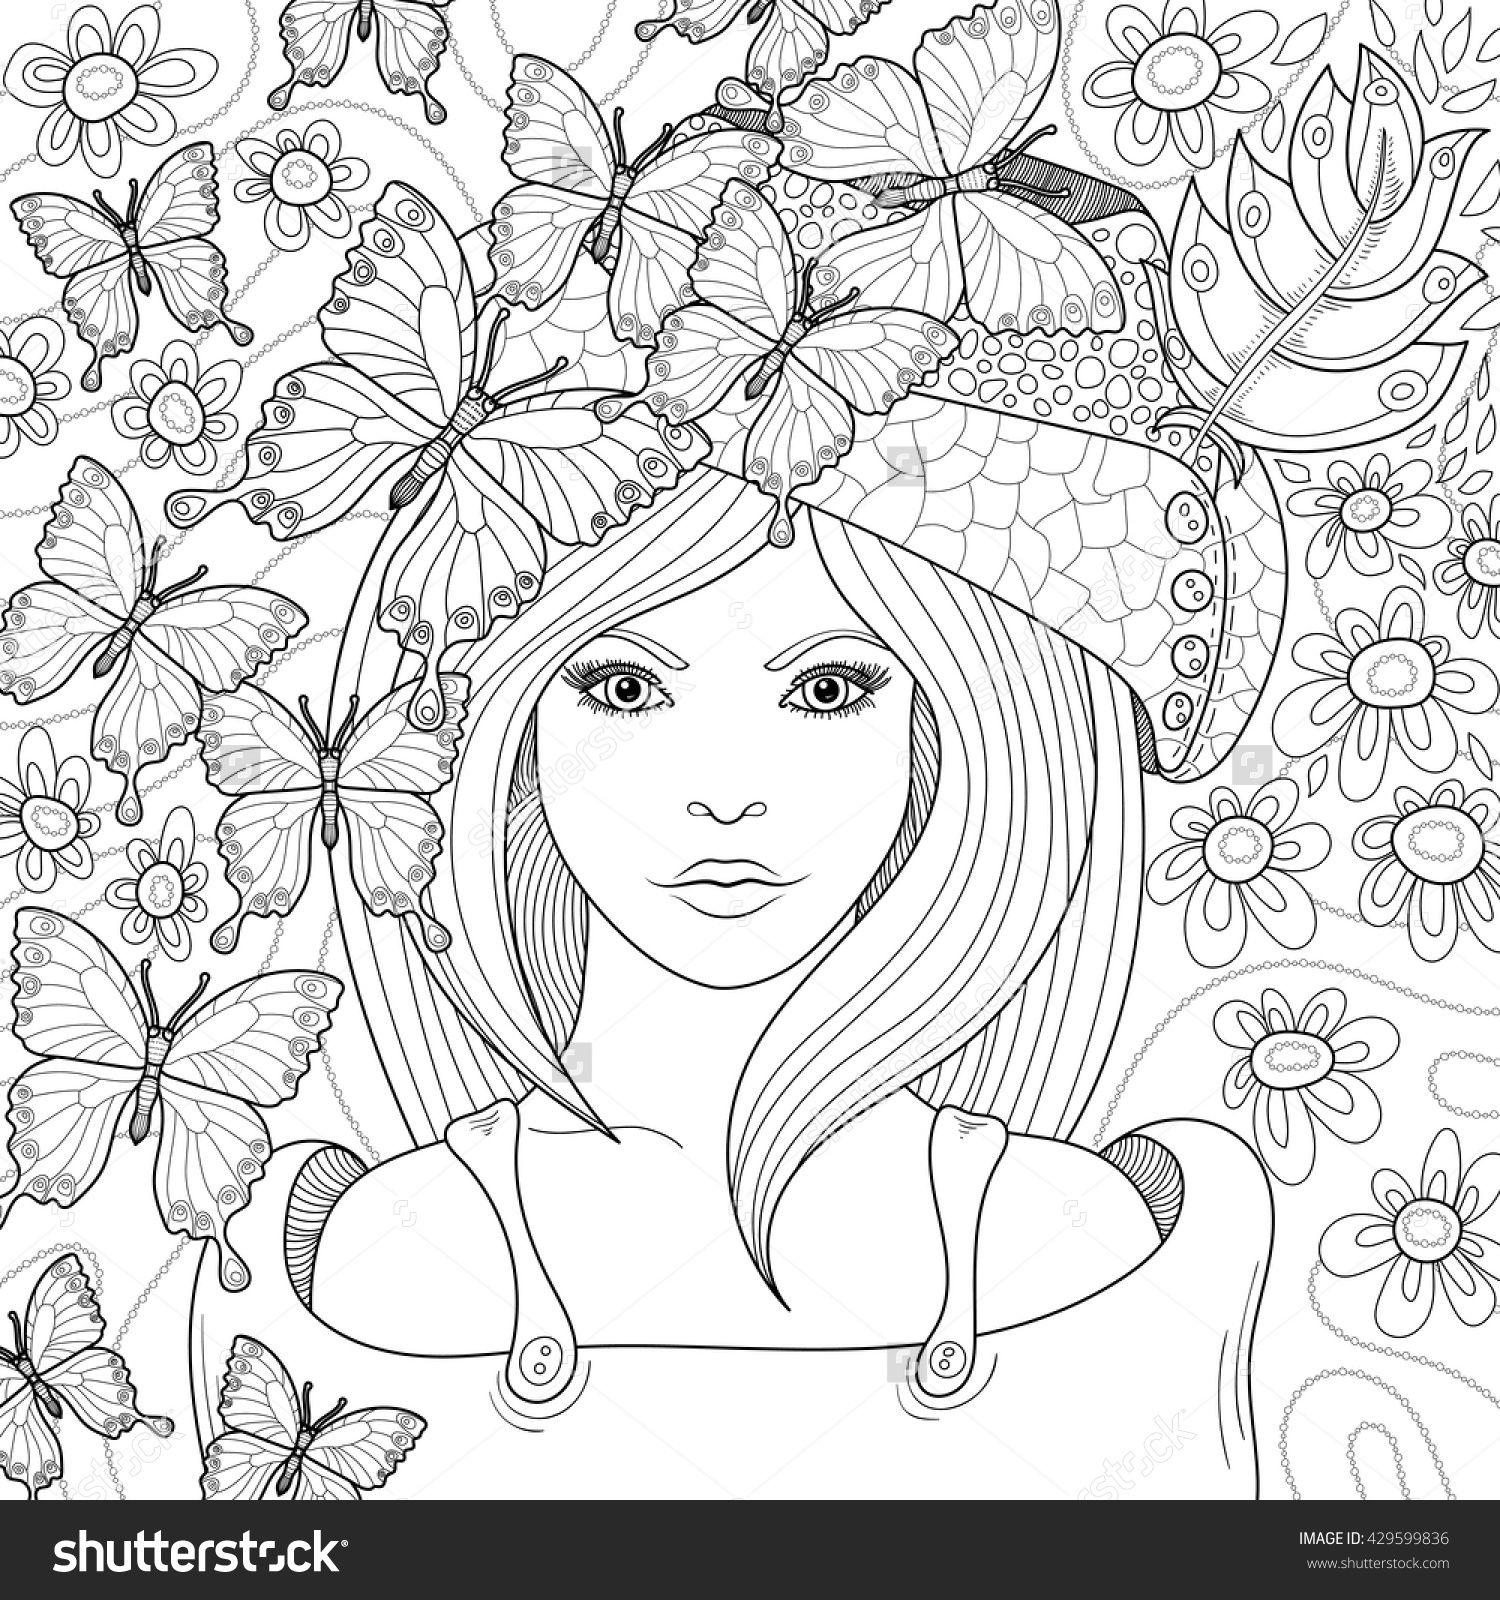 Anti stress colouring pages for adults - Anti Stress Coloring Book Page For Adult Coloring Book Page